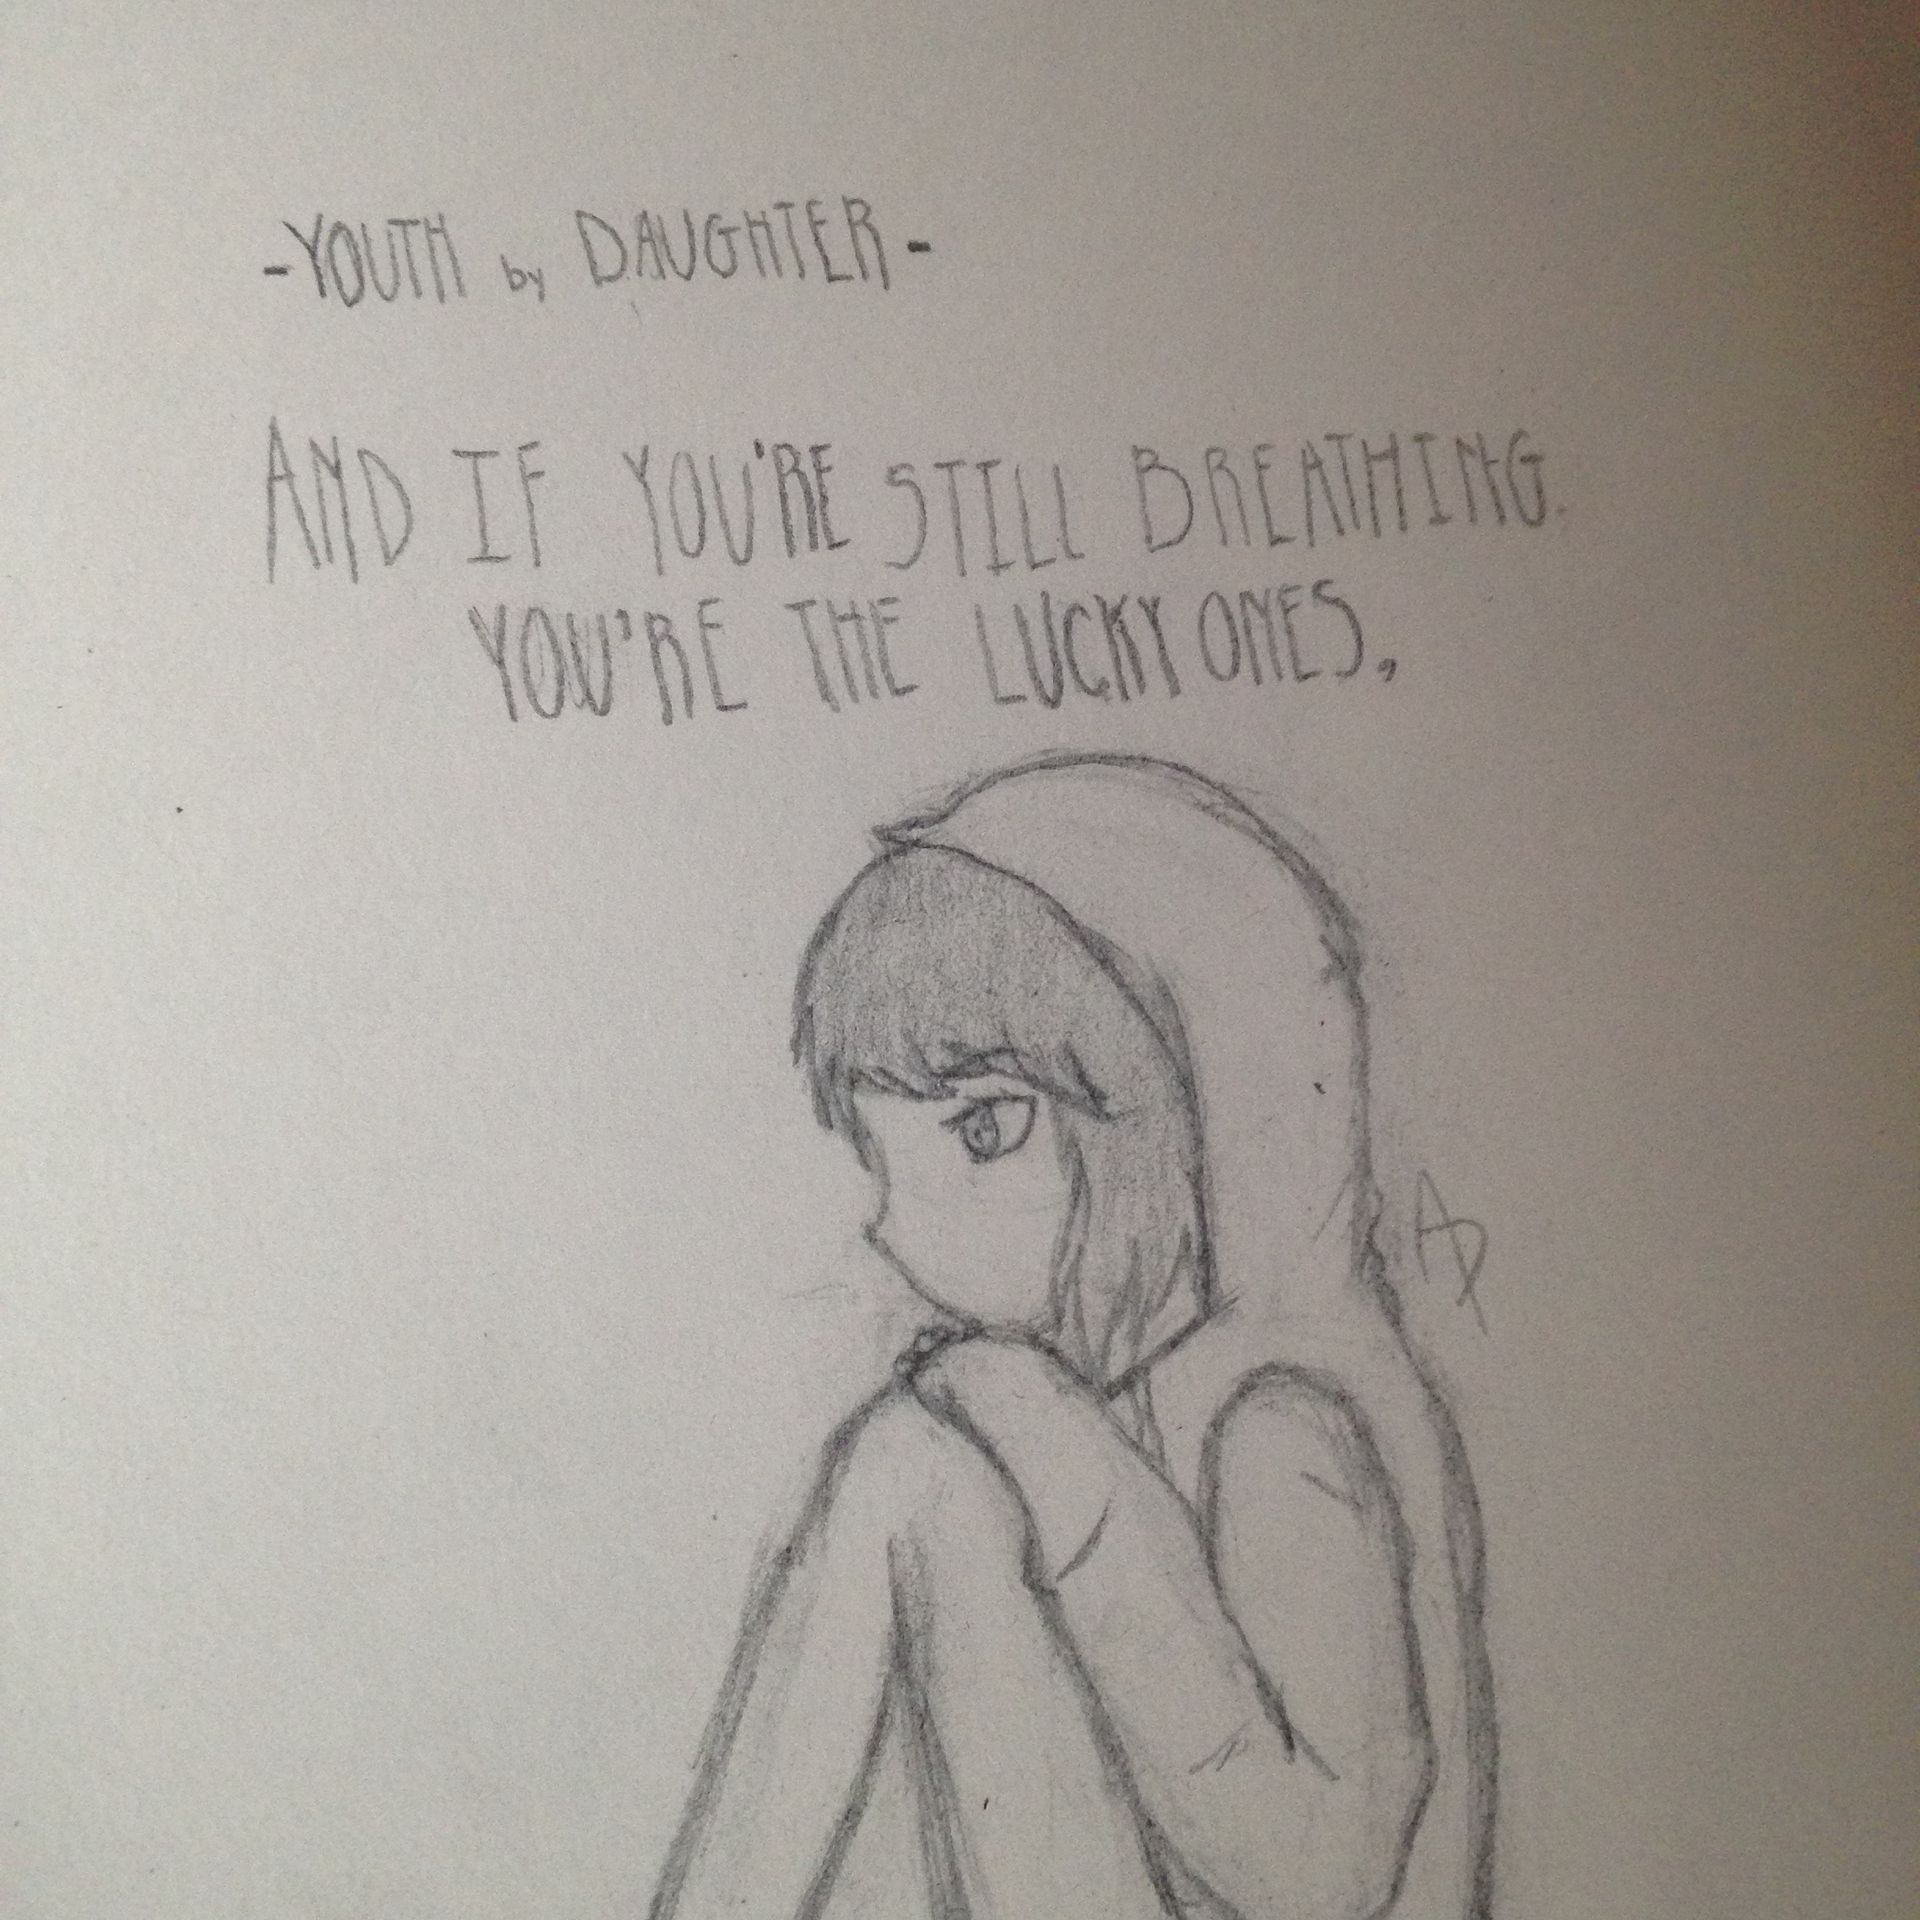 A Little Lyric Drawing Of Youth By Daughter